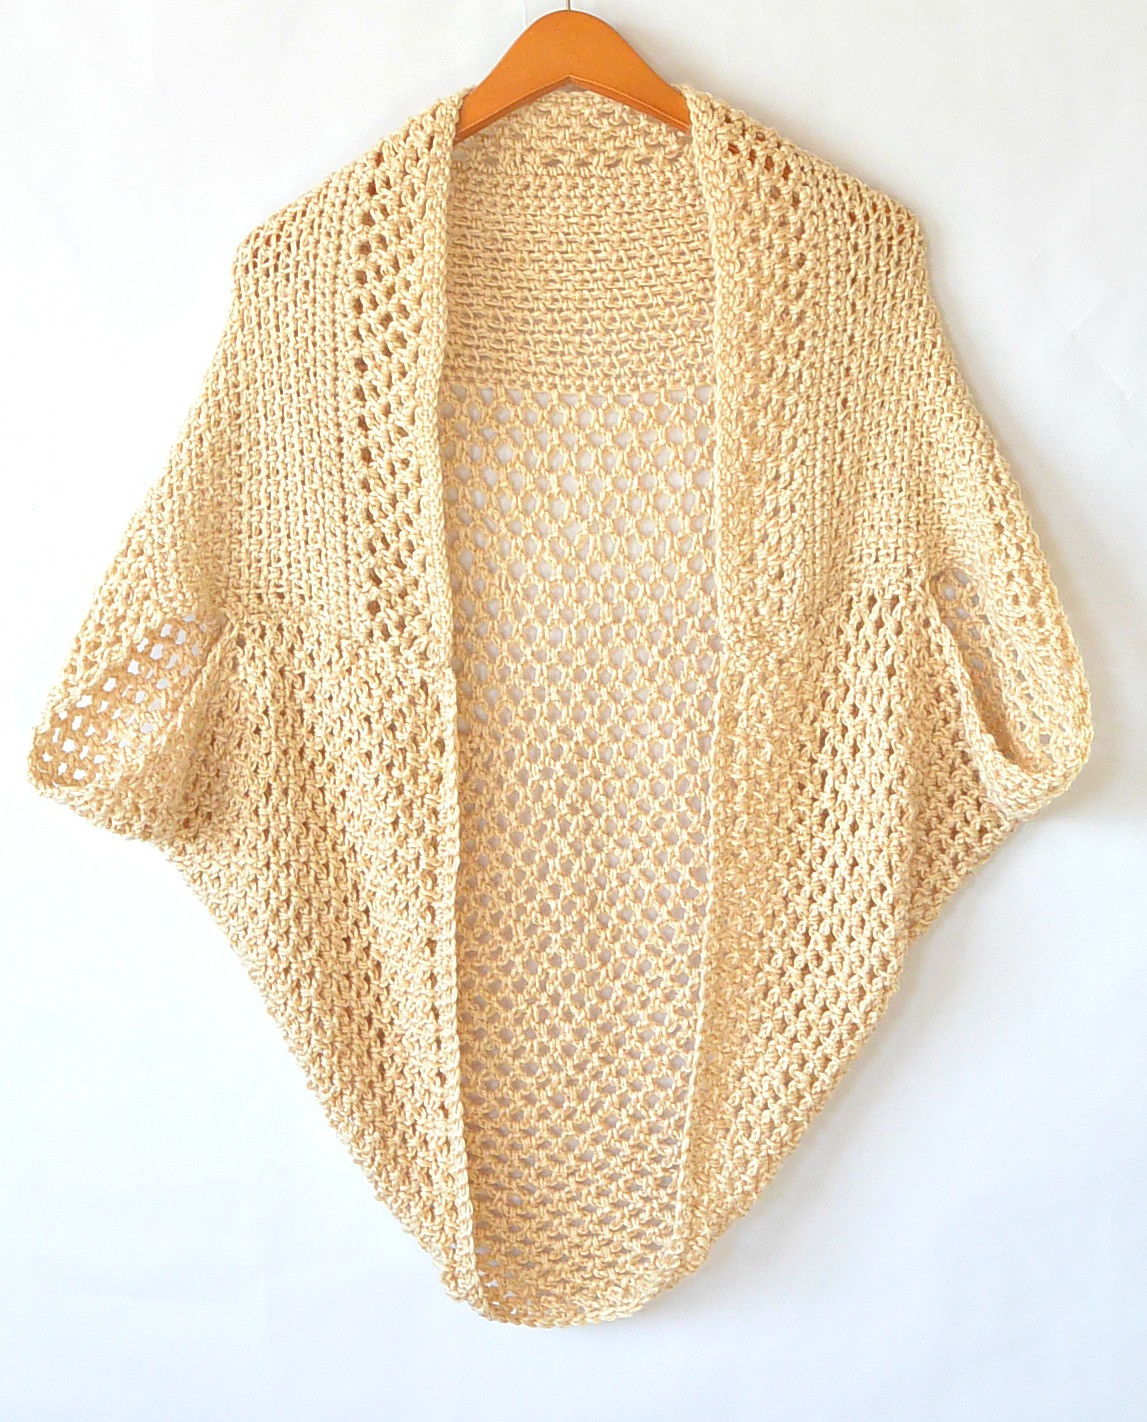 Lovely Mod Mesh Honey Blanket Sweater – Mama In A Stitch Crochet Cardigans Of Gorgeous 40 Pics Crochet Cardigans